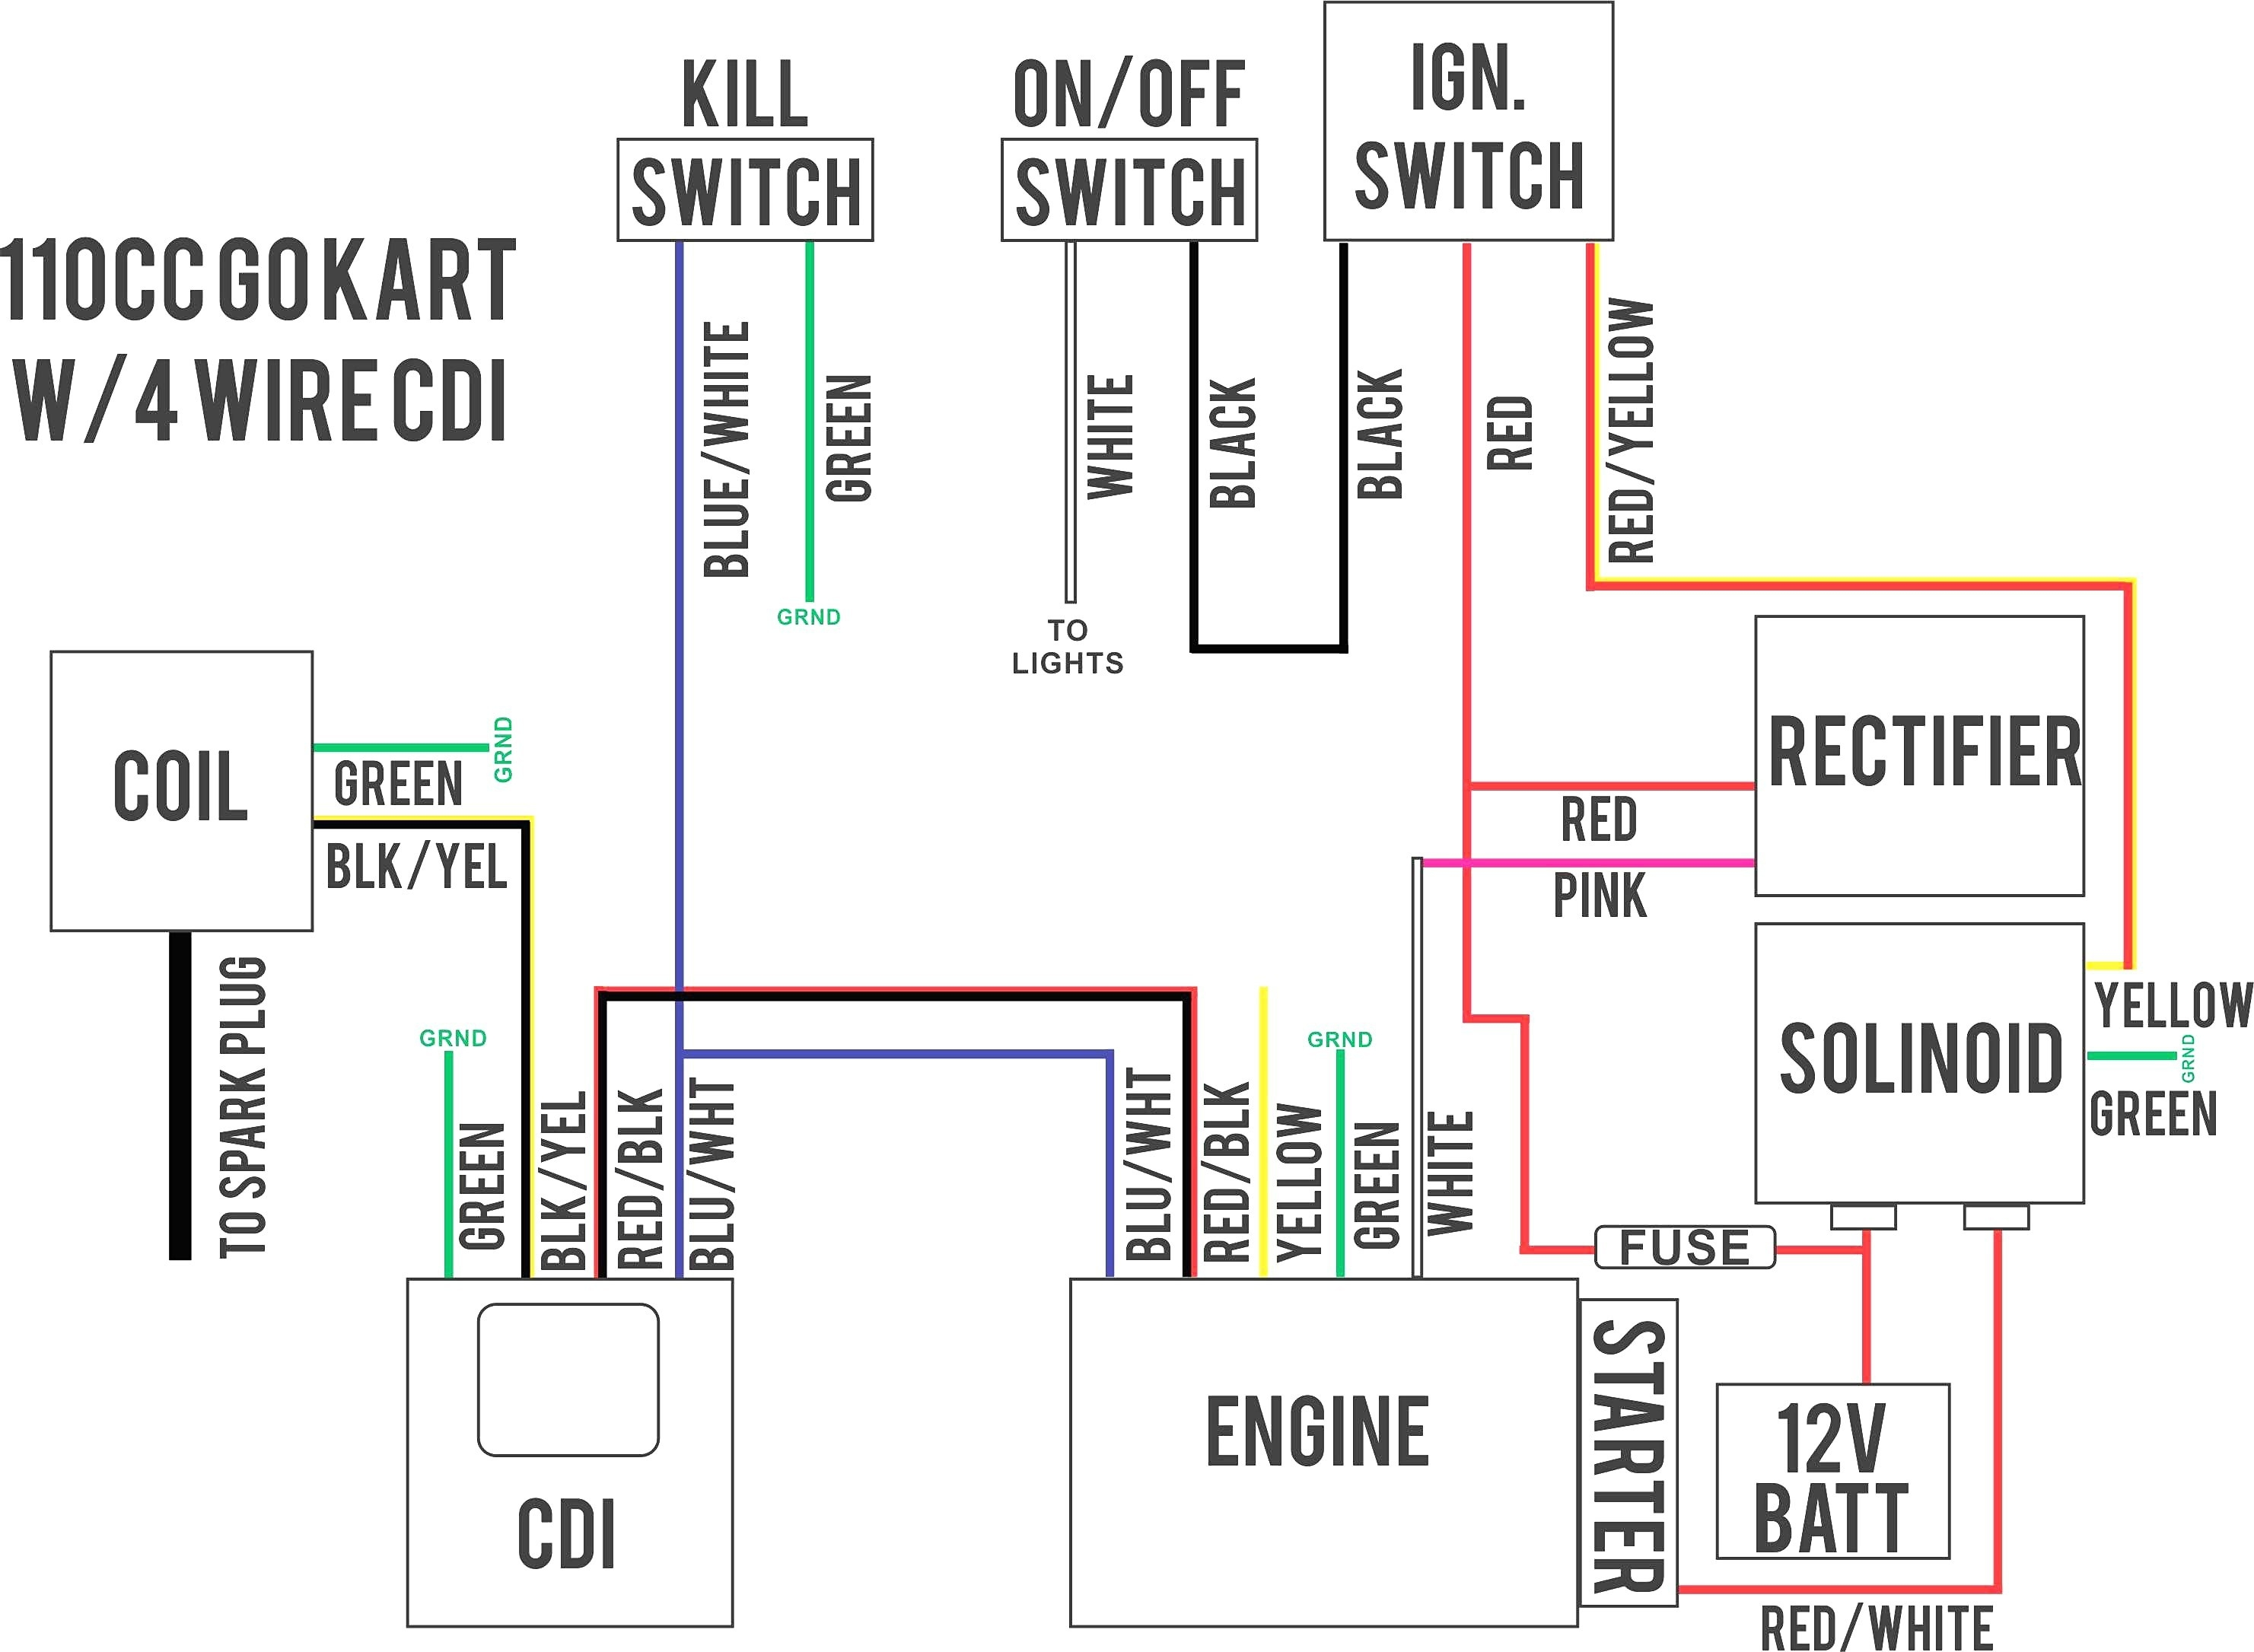 Looper Wiring Diagram 110 Wiring Diagrams Schematic John Deere 110 Wiring  Diagram Looper Wiring Diagram 110